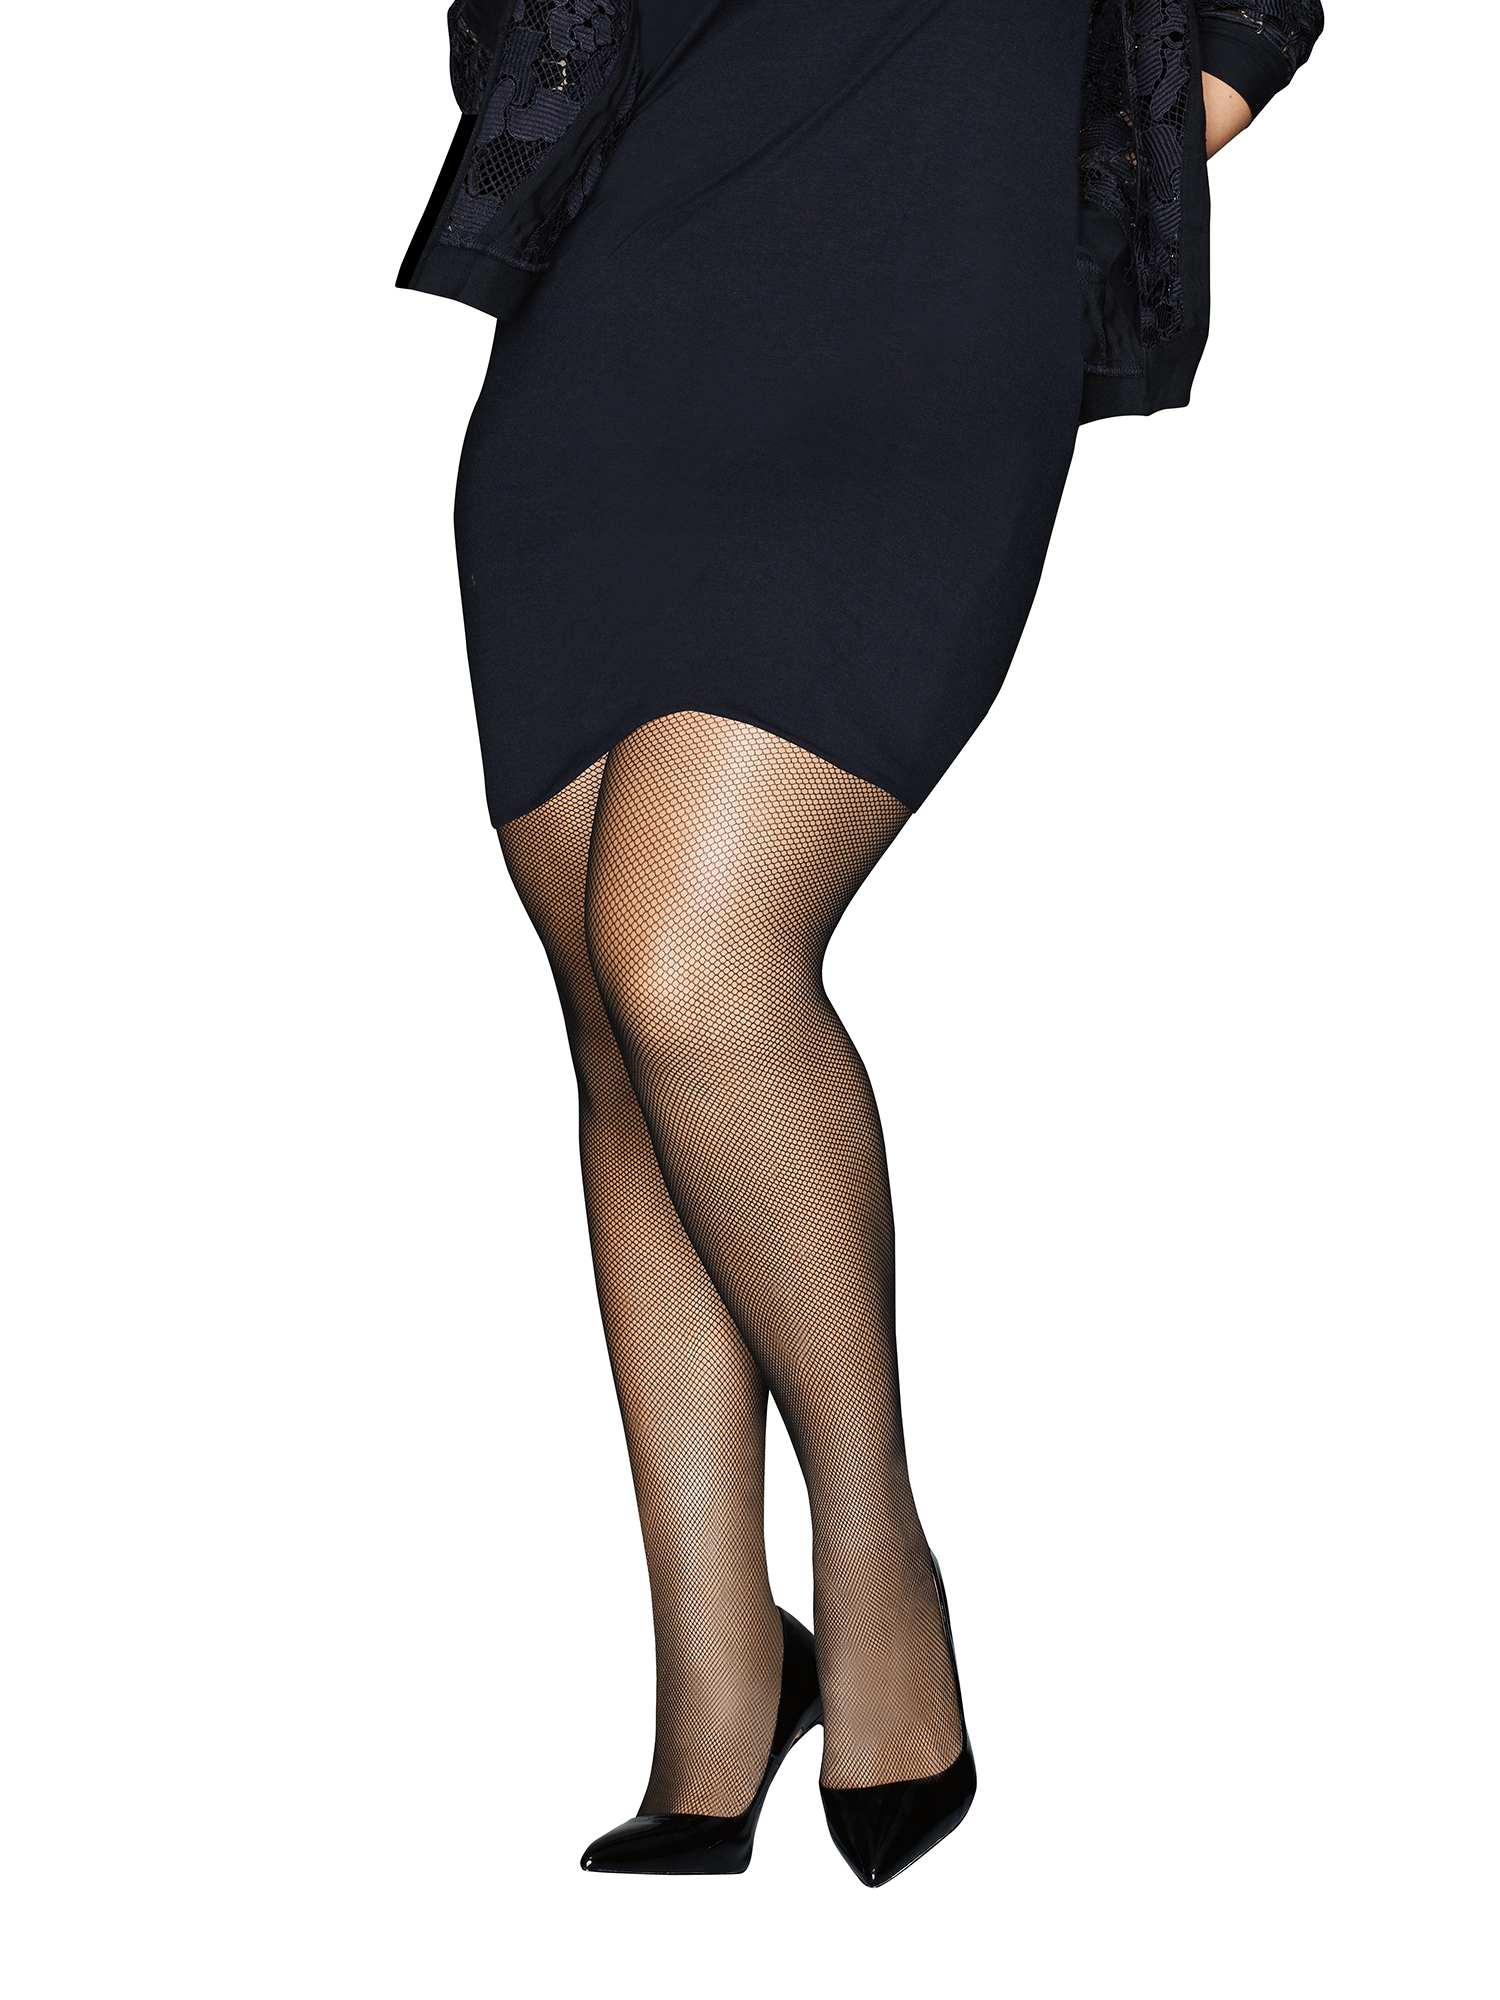 2a7dd2add Just My Size Pantyhose Collection - Walmart.com